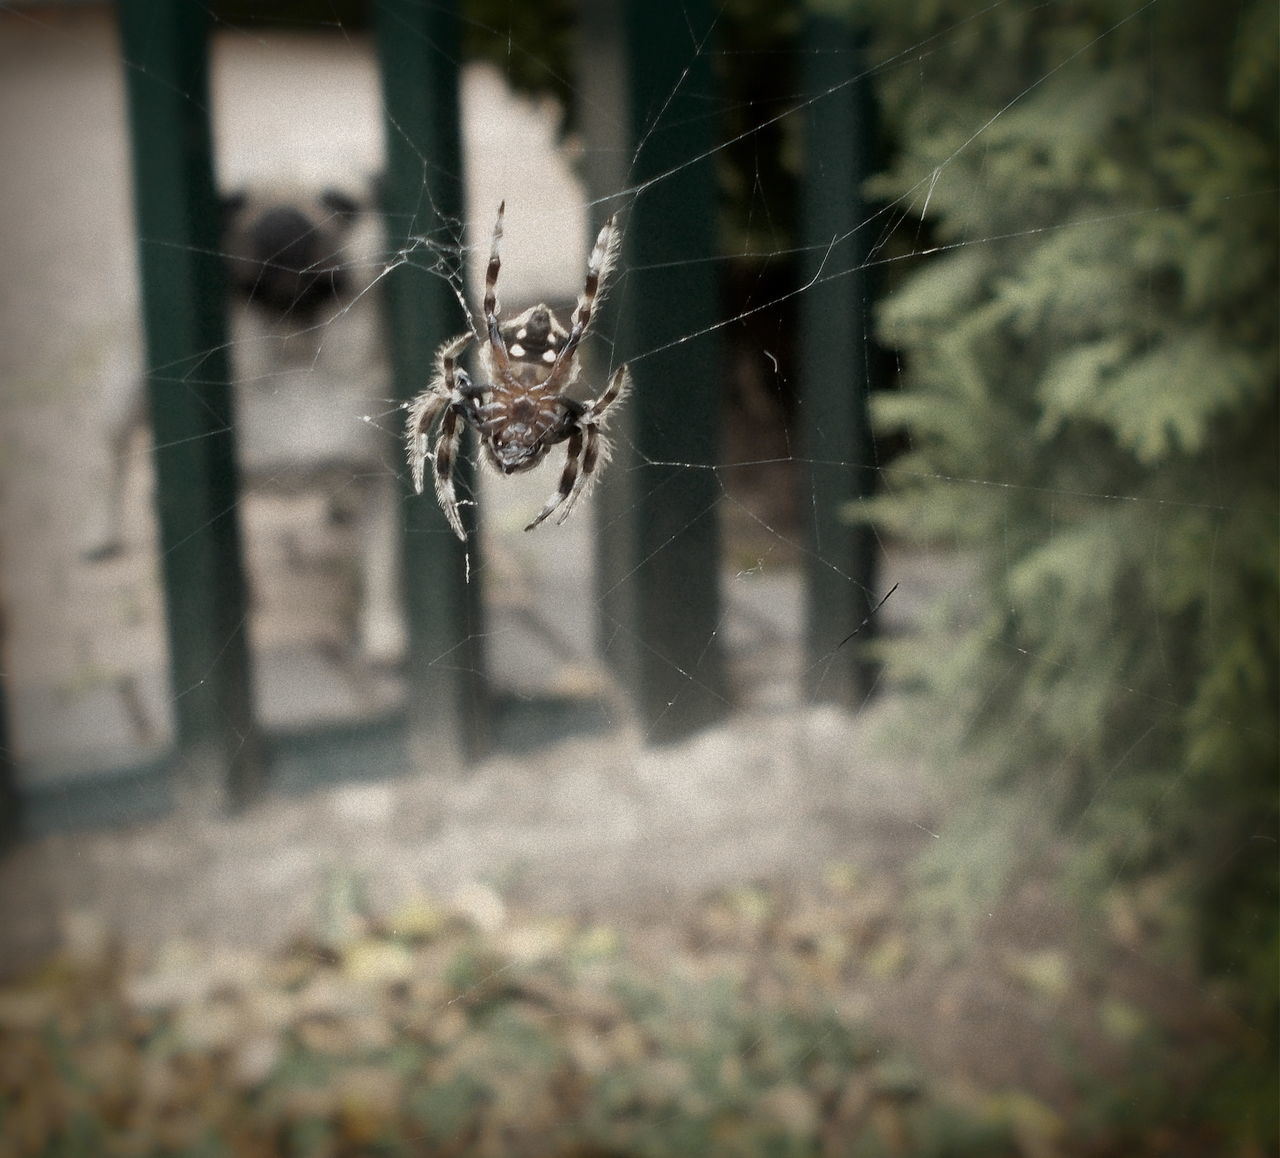 spider, one animal, spider web, animal themes, animals in the wild, insect, day, focus on foreground, outdoors, no people, animal wildlife, web, nature, close-up